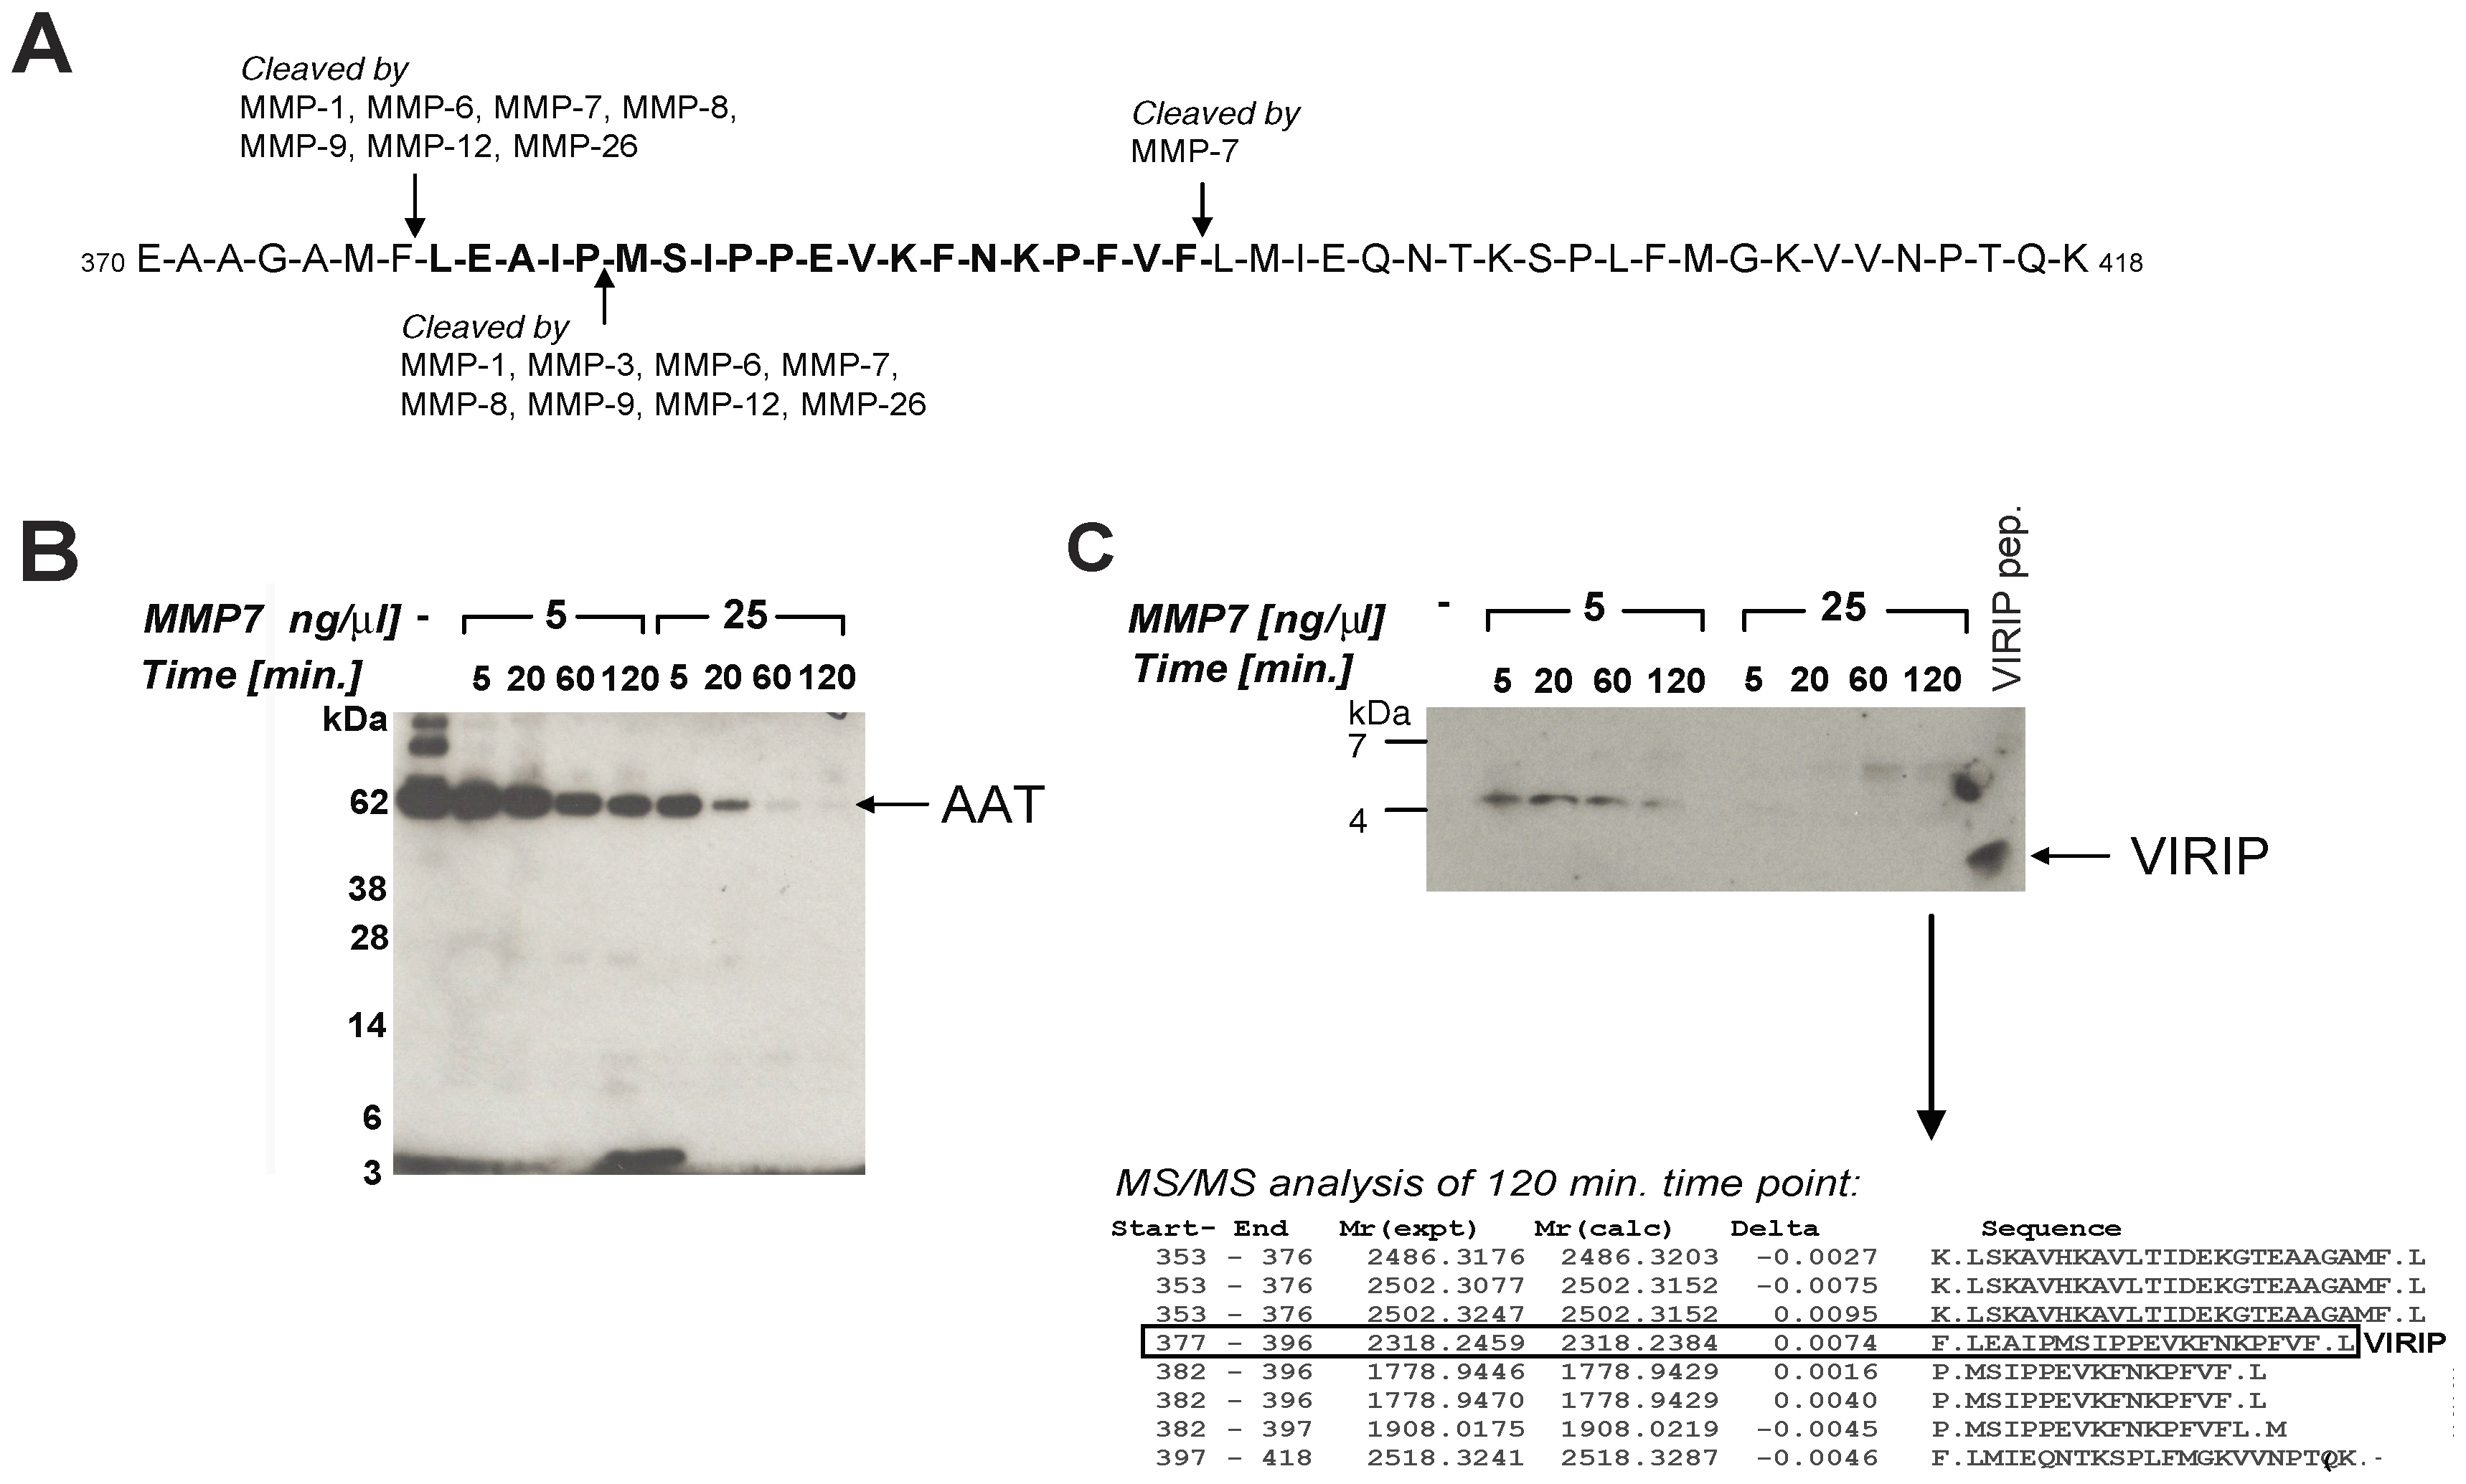 Proteolytic processing of AAT by MMP-7 generates VIRIP in vitro.